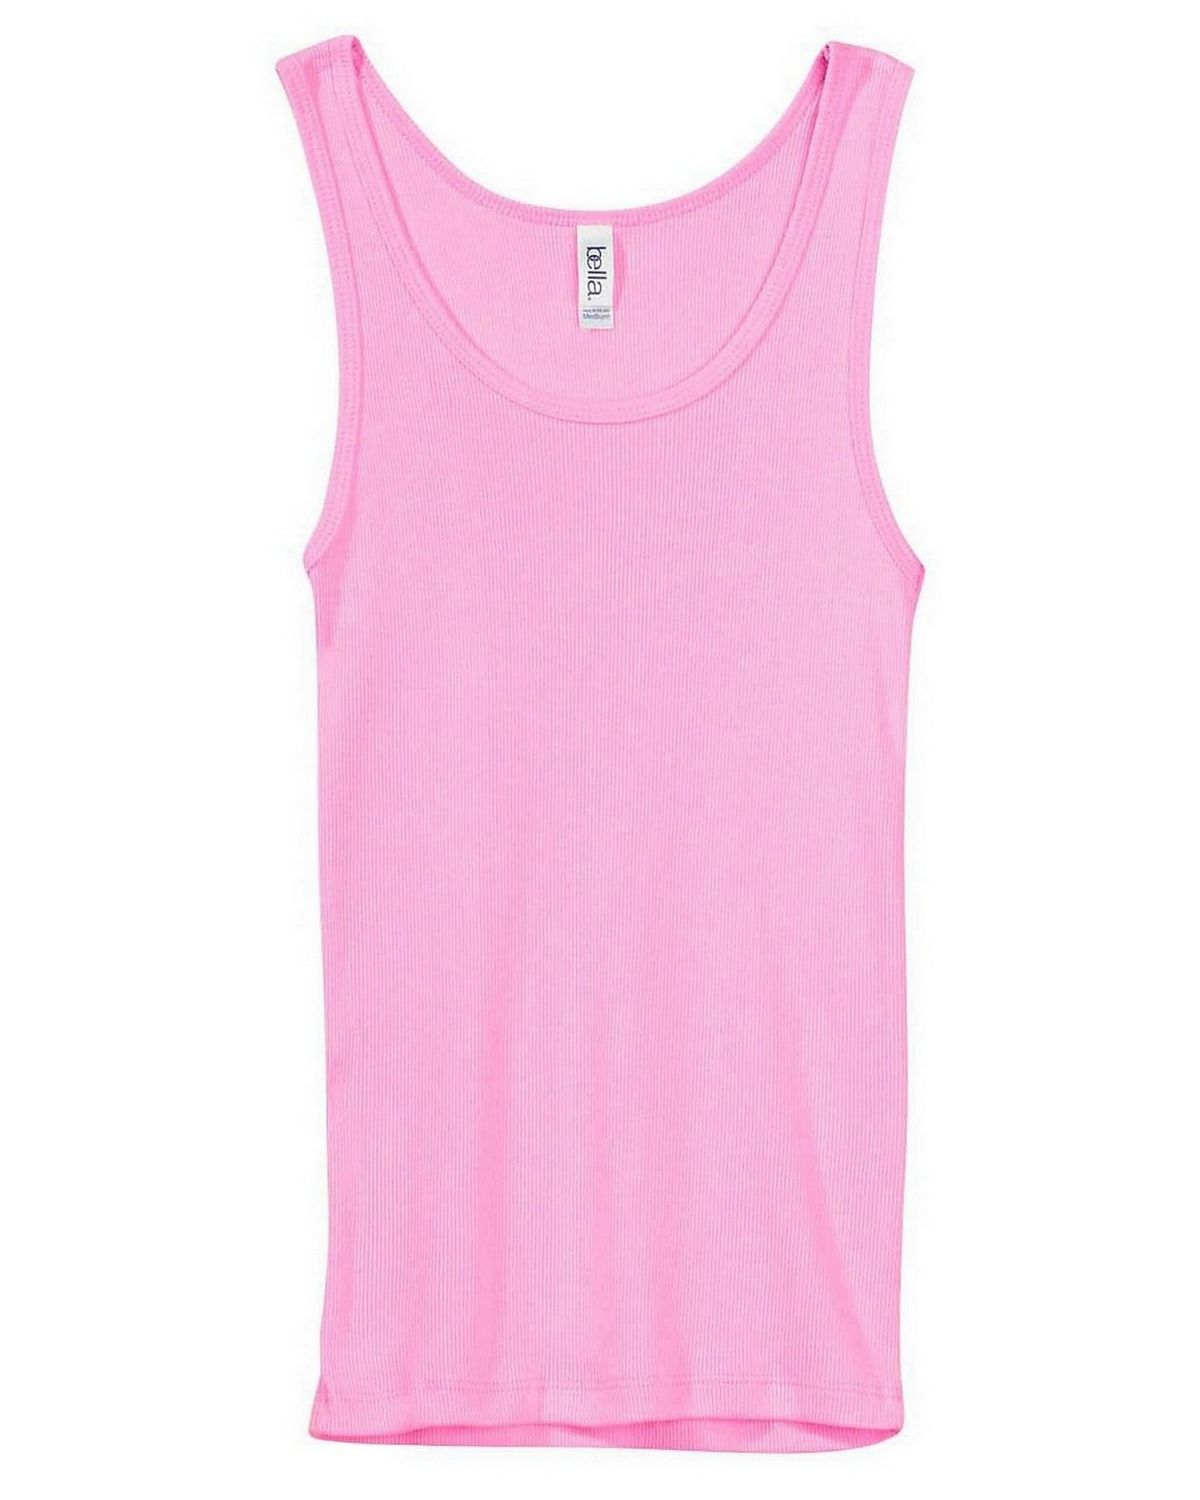 Bella + Canvas 4000 Ladies 2x1 Rib Tank - Pink - L 4000